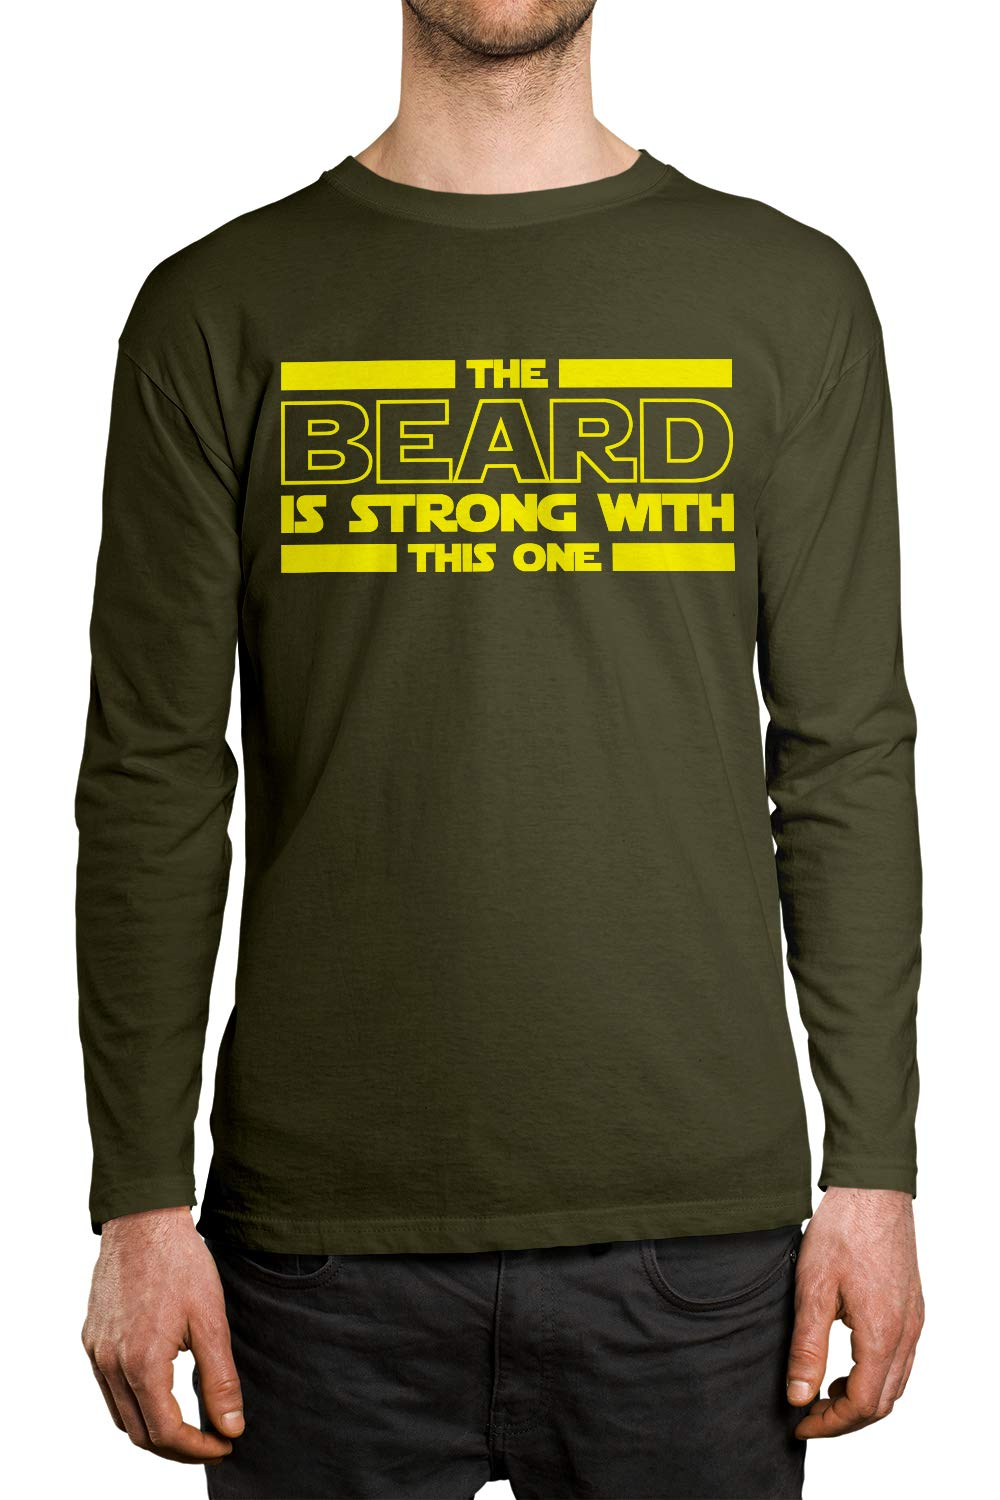 Apparel The Beard Is Strong With This One S Shirt